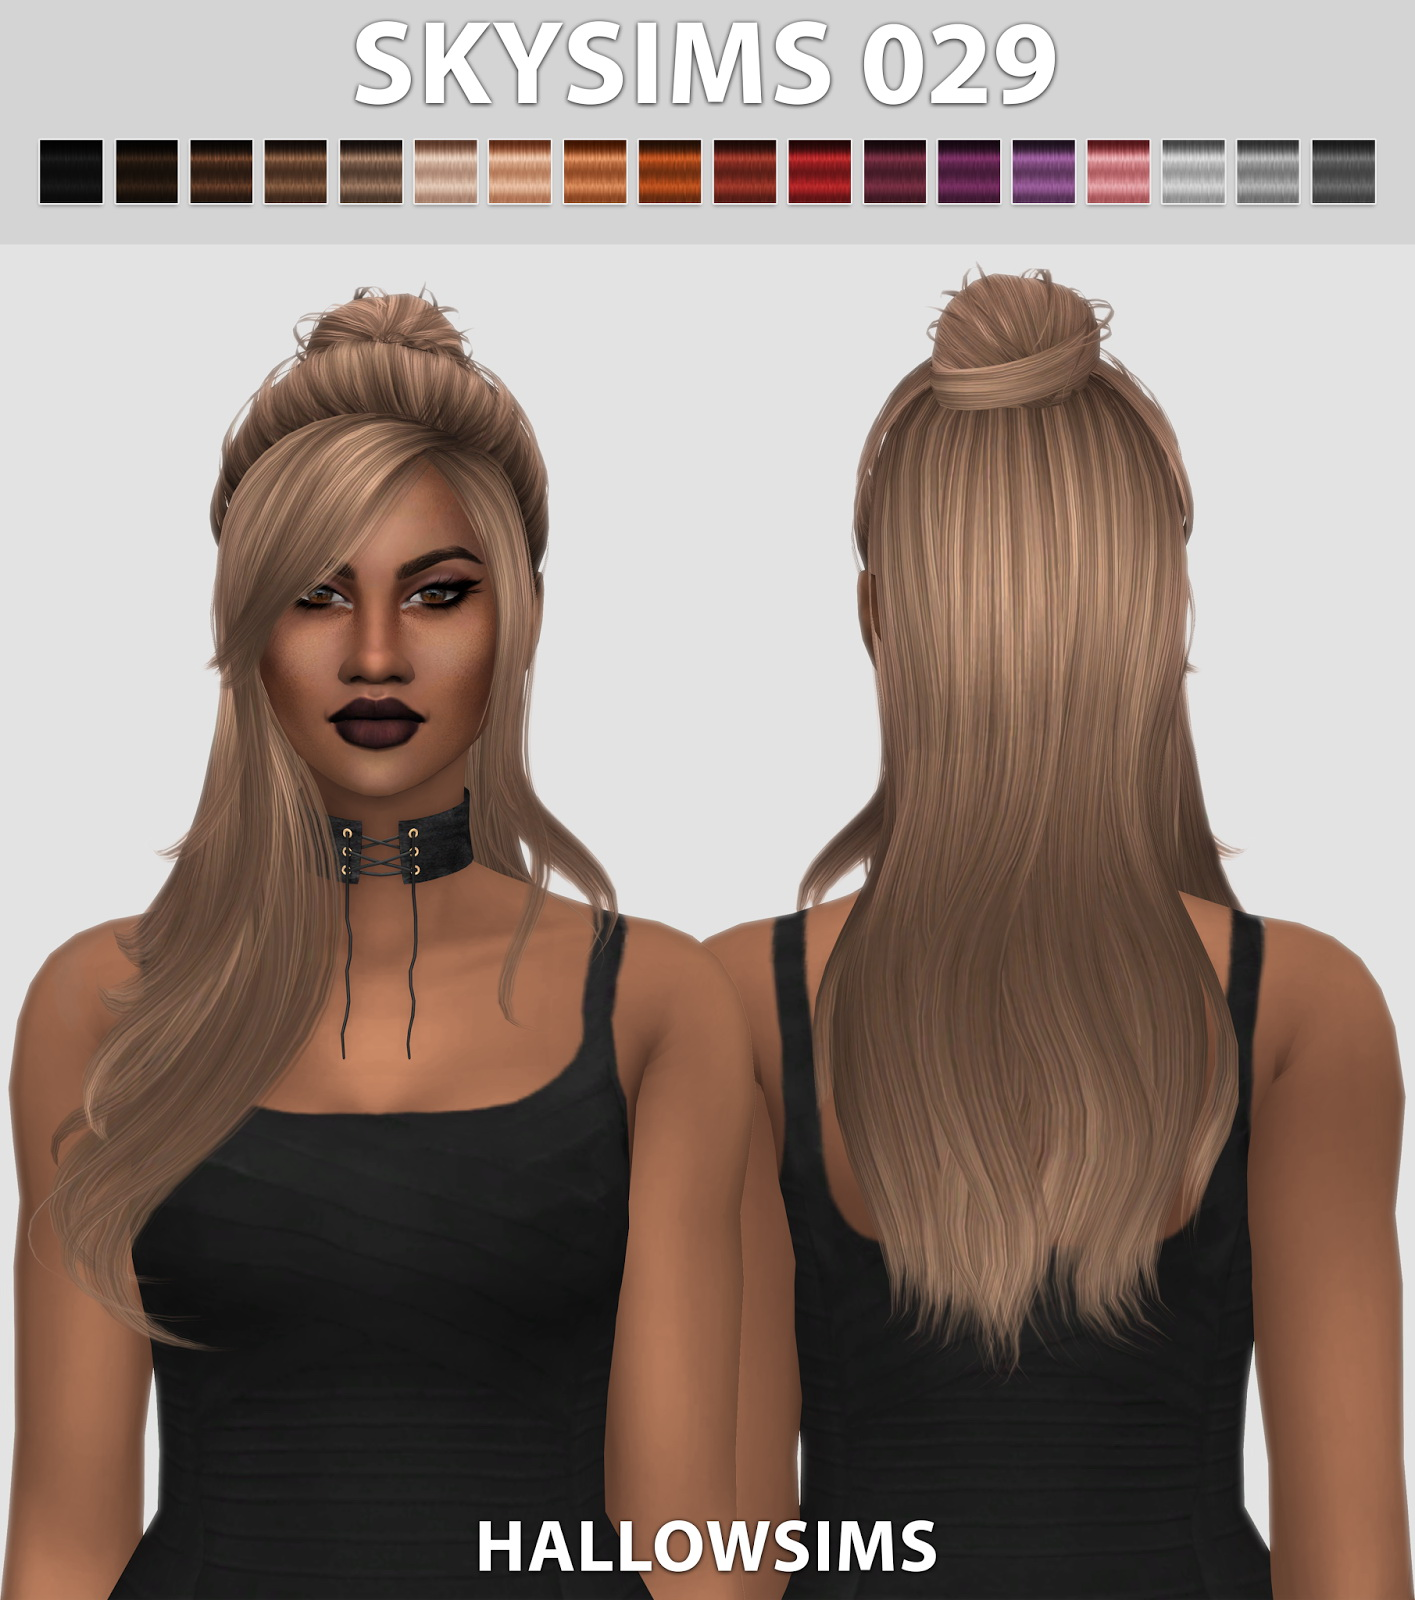 Sims 4 Hairstyles: Hallow Sims: Skysims 029 Hair Retextured